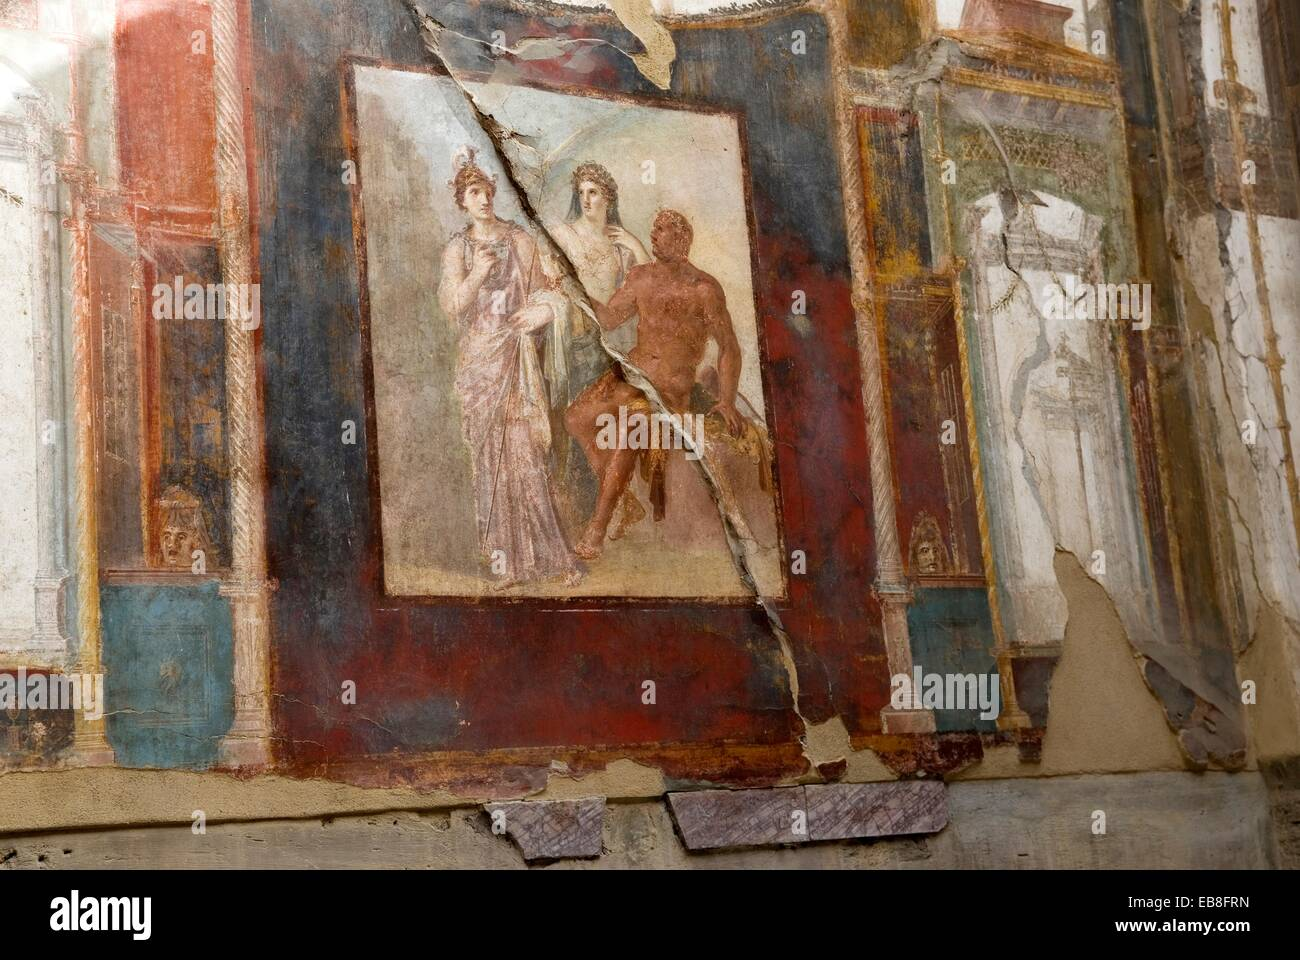 painting depicting Hercule Minerva and Juno inside the Aedes Augustalium archeological site Herculaneum Pompeii - Stock Image